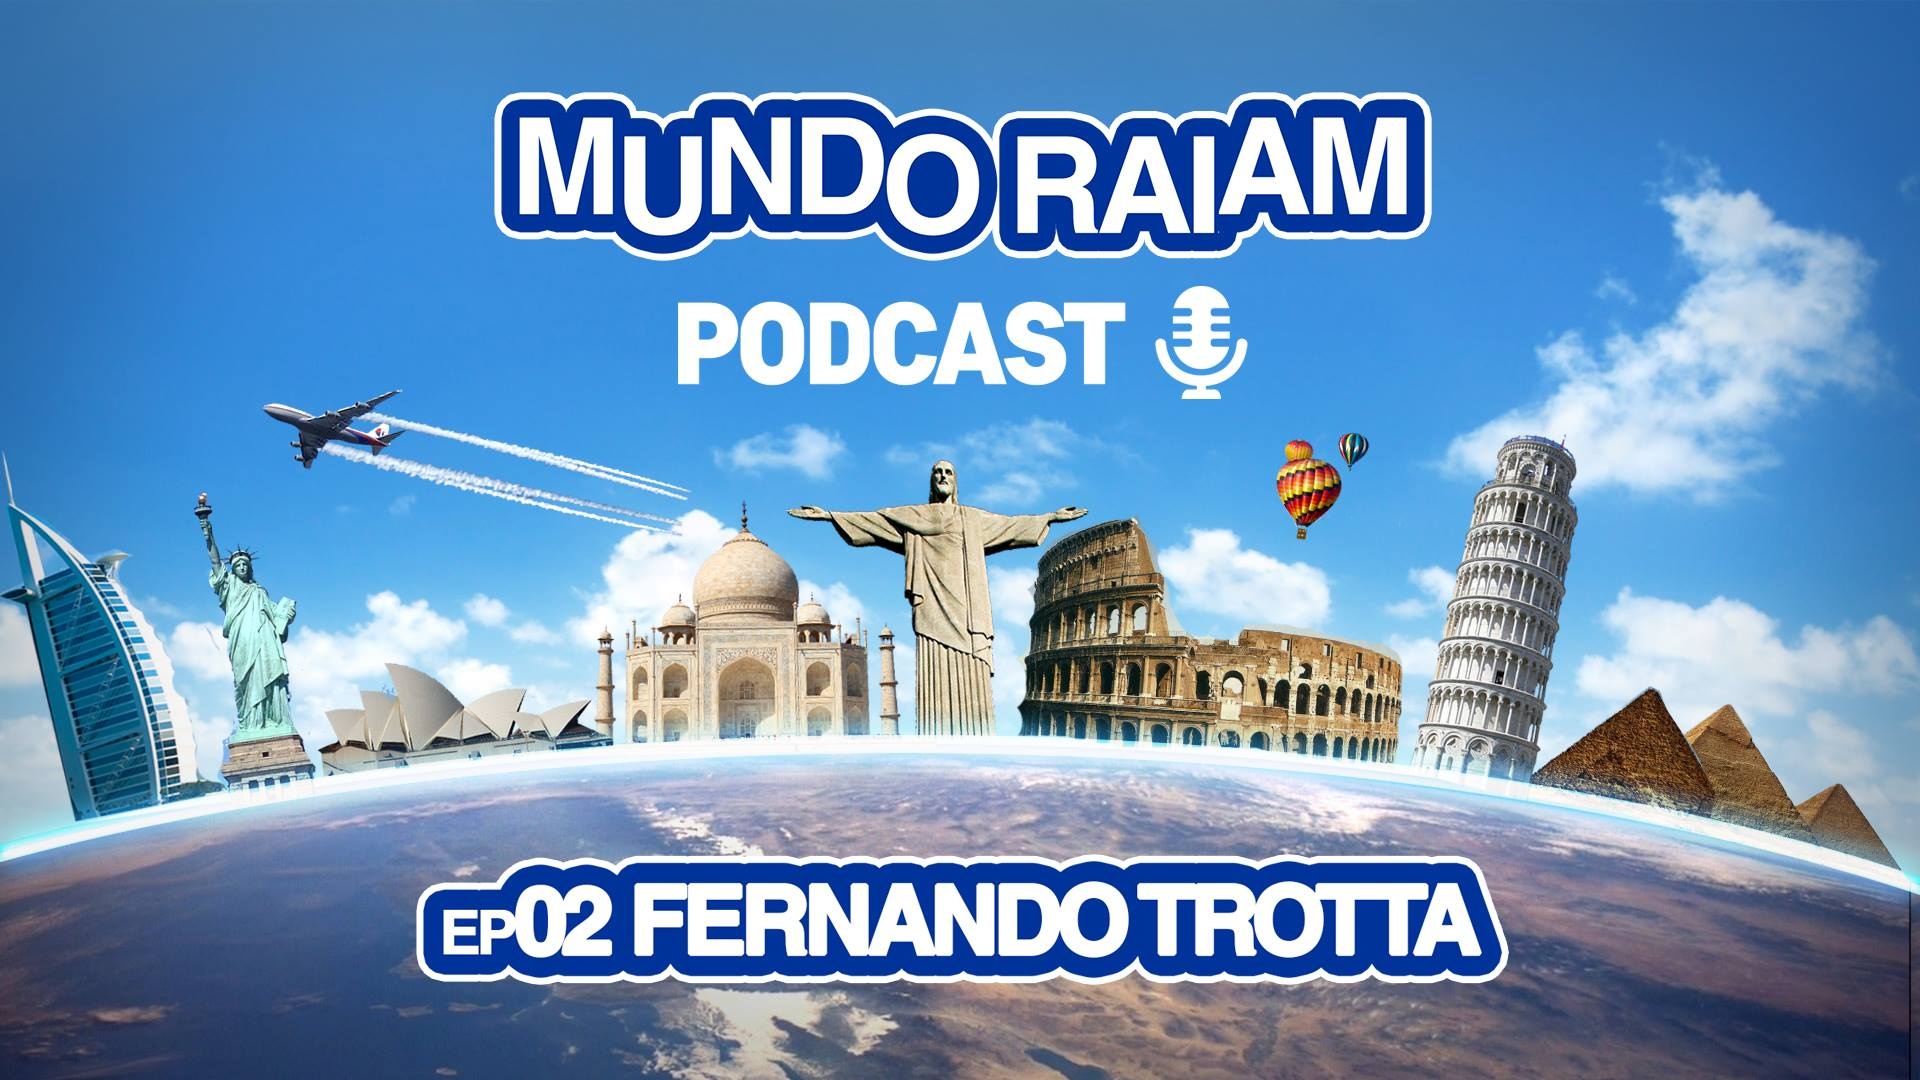 MundoRaiam Podcast EP02: Fernando Trotta